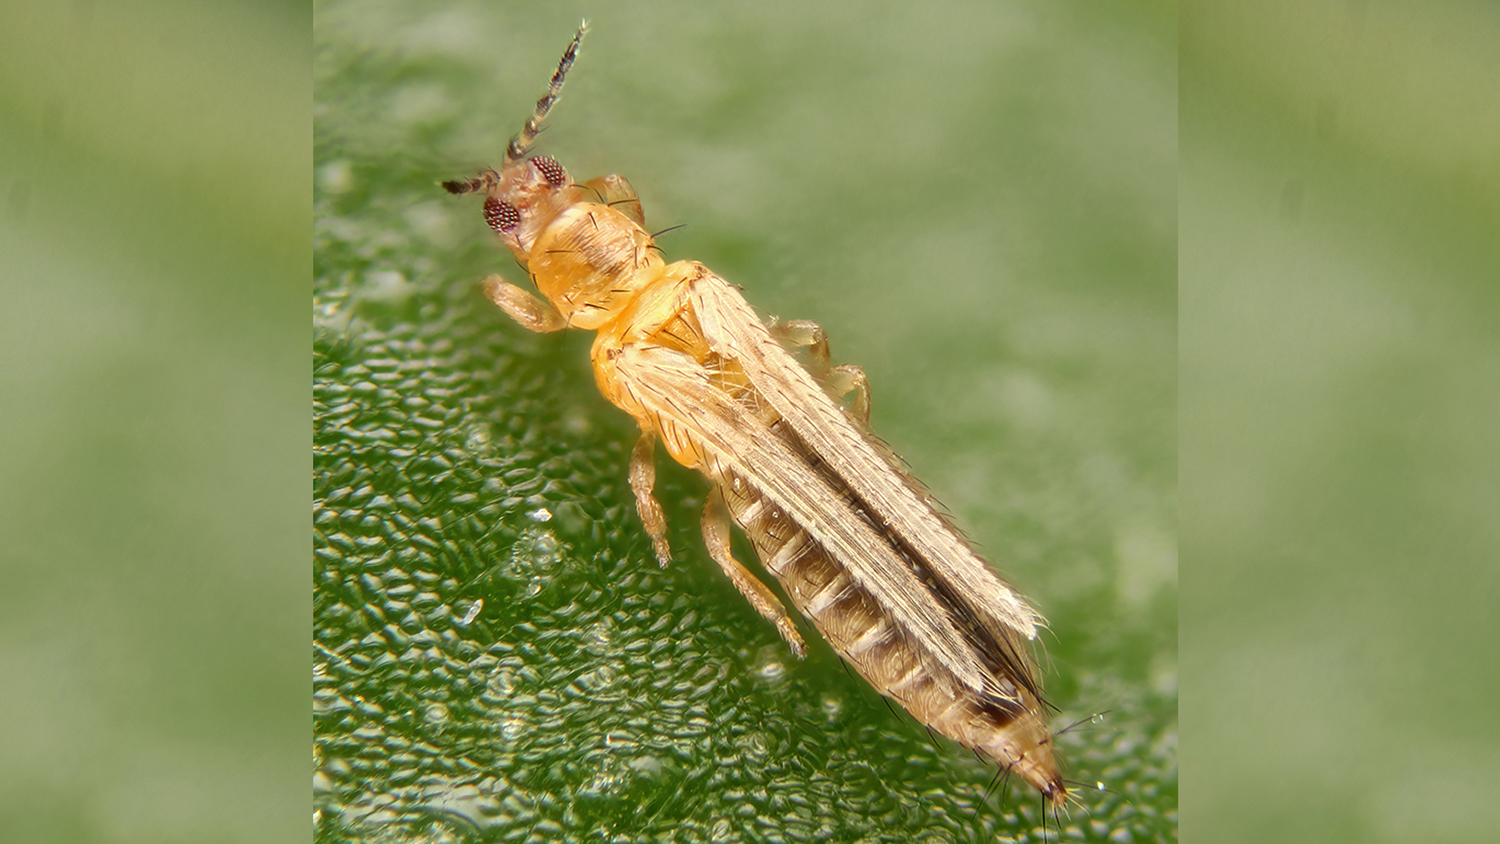 An insect with fringed wings on a plant